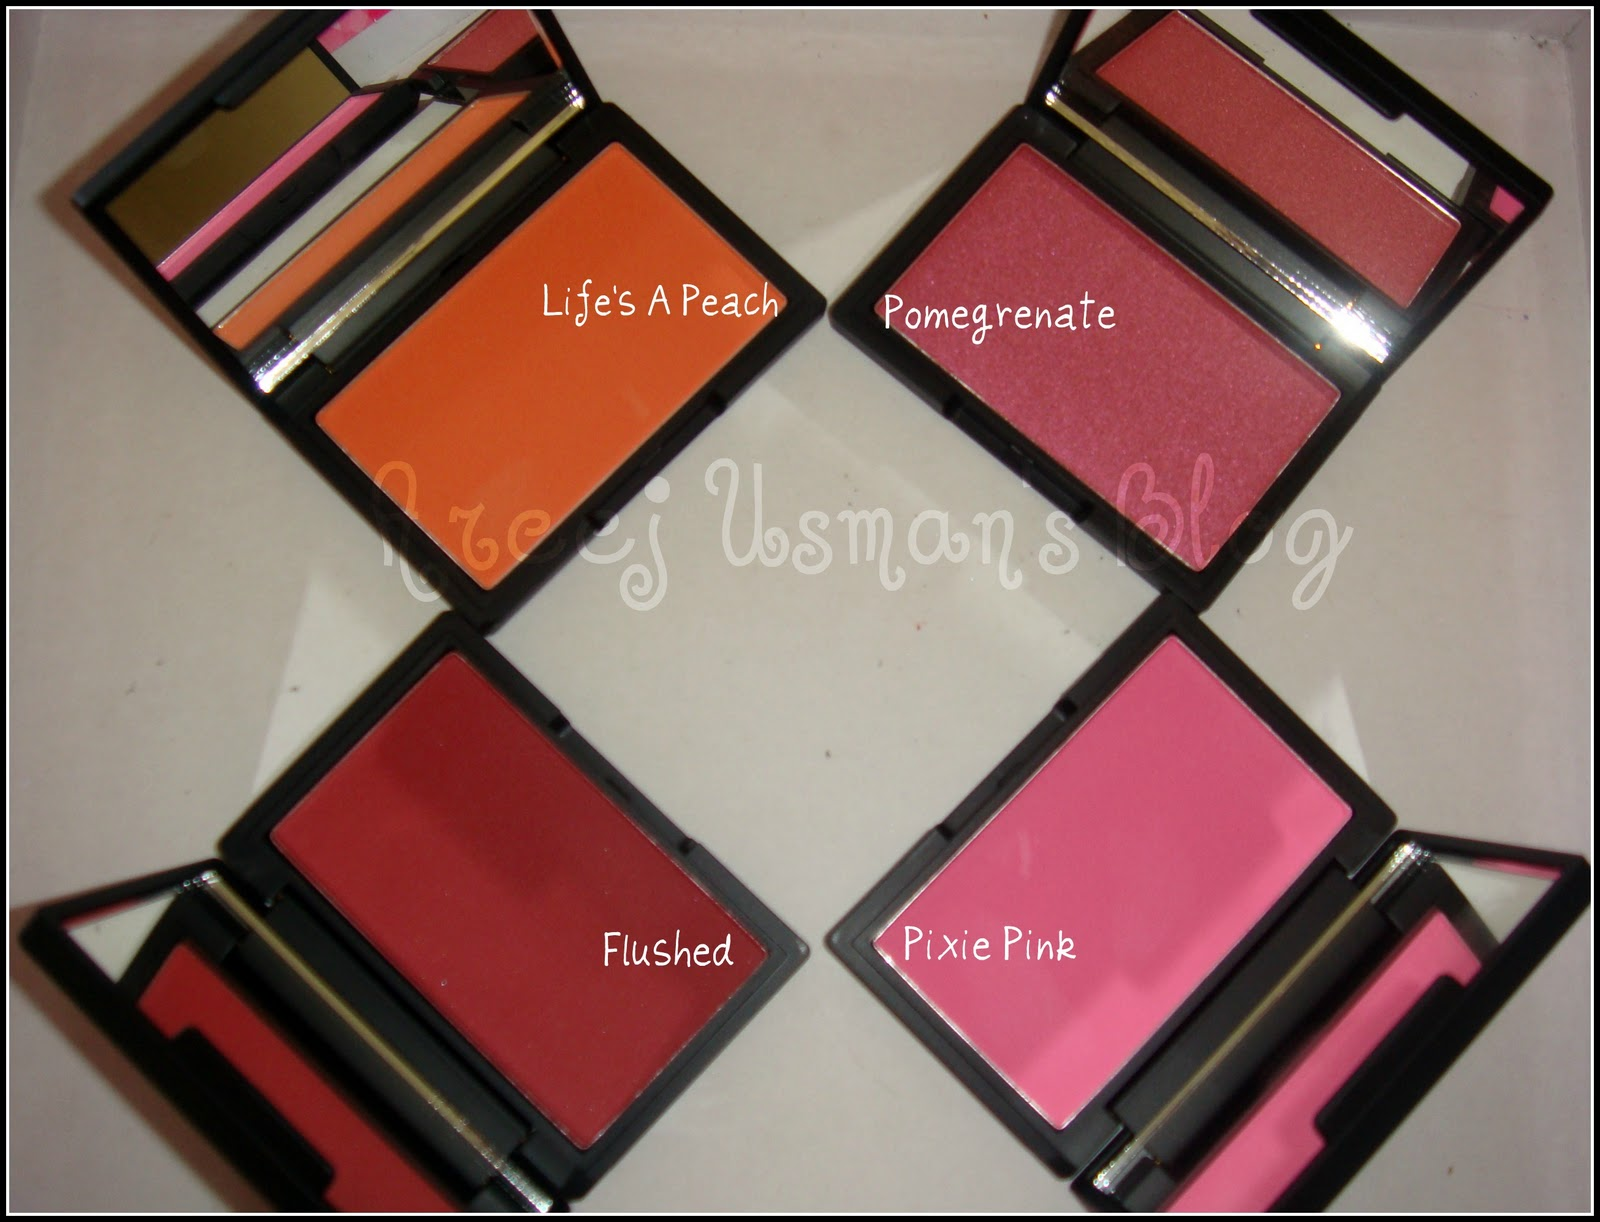 Here are the swatches for the blushers: